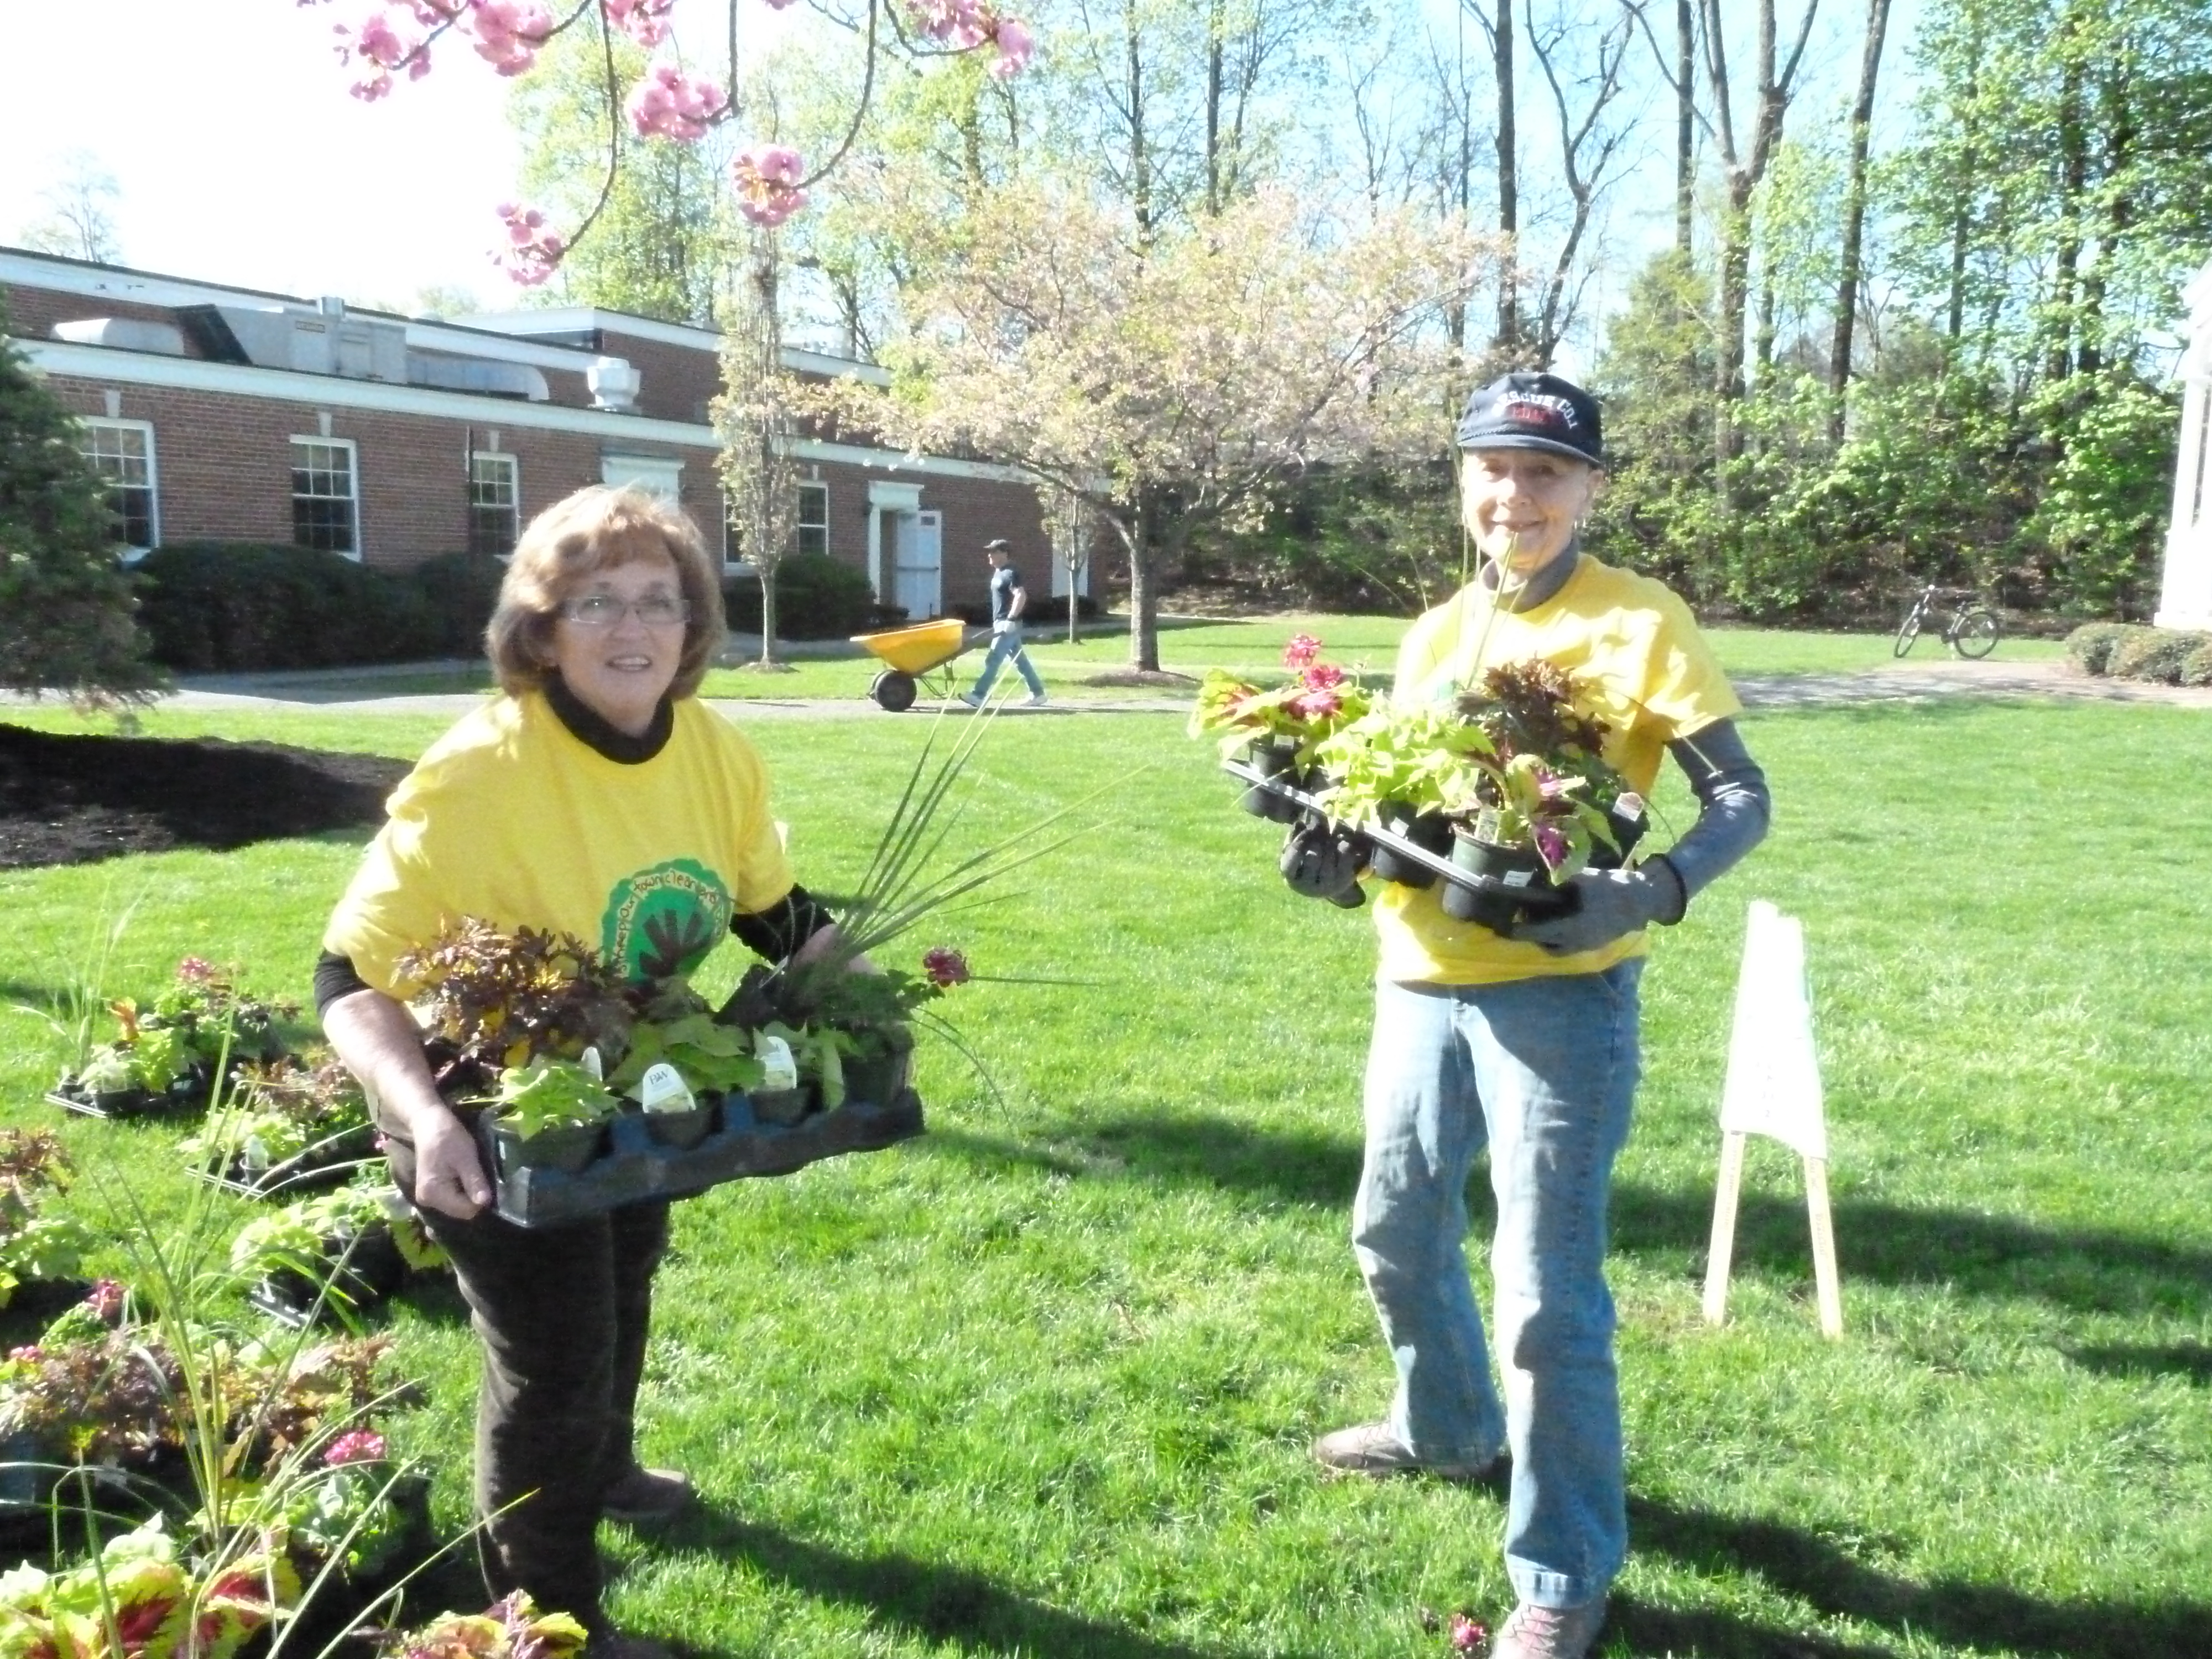 b379efe79c24e13a875e_Director_of_Community_Services_Janice_R._Piccolo_and_Volunteer_Helen_Gardener_sort_palnts_fo_rhte_central_busienss_district_planters.JPG